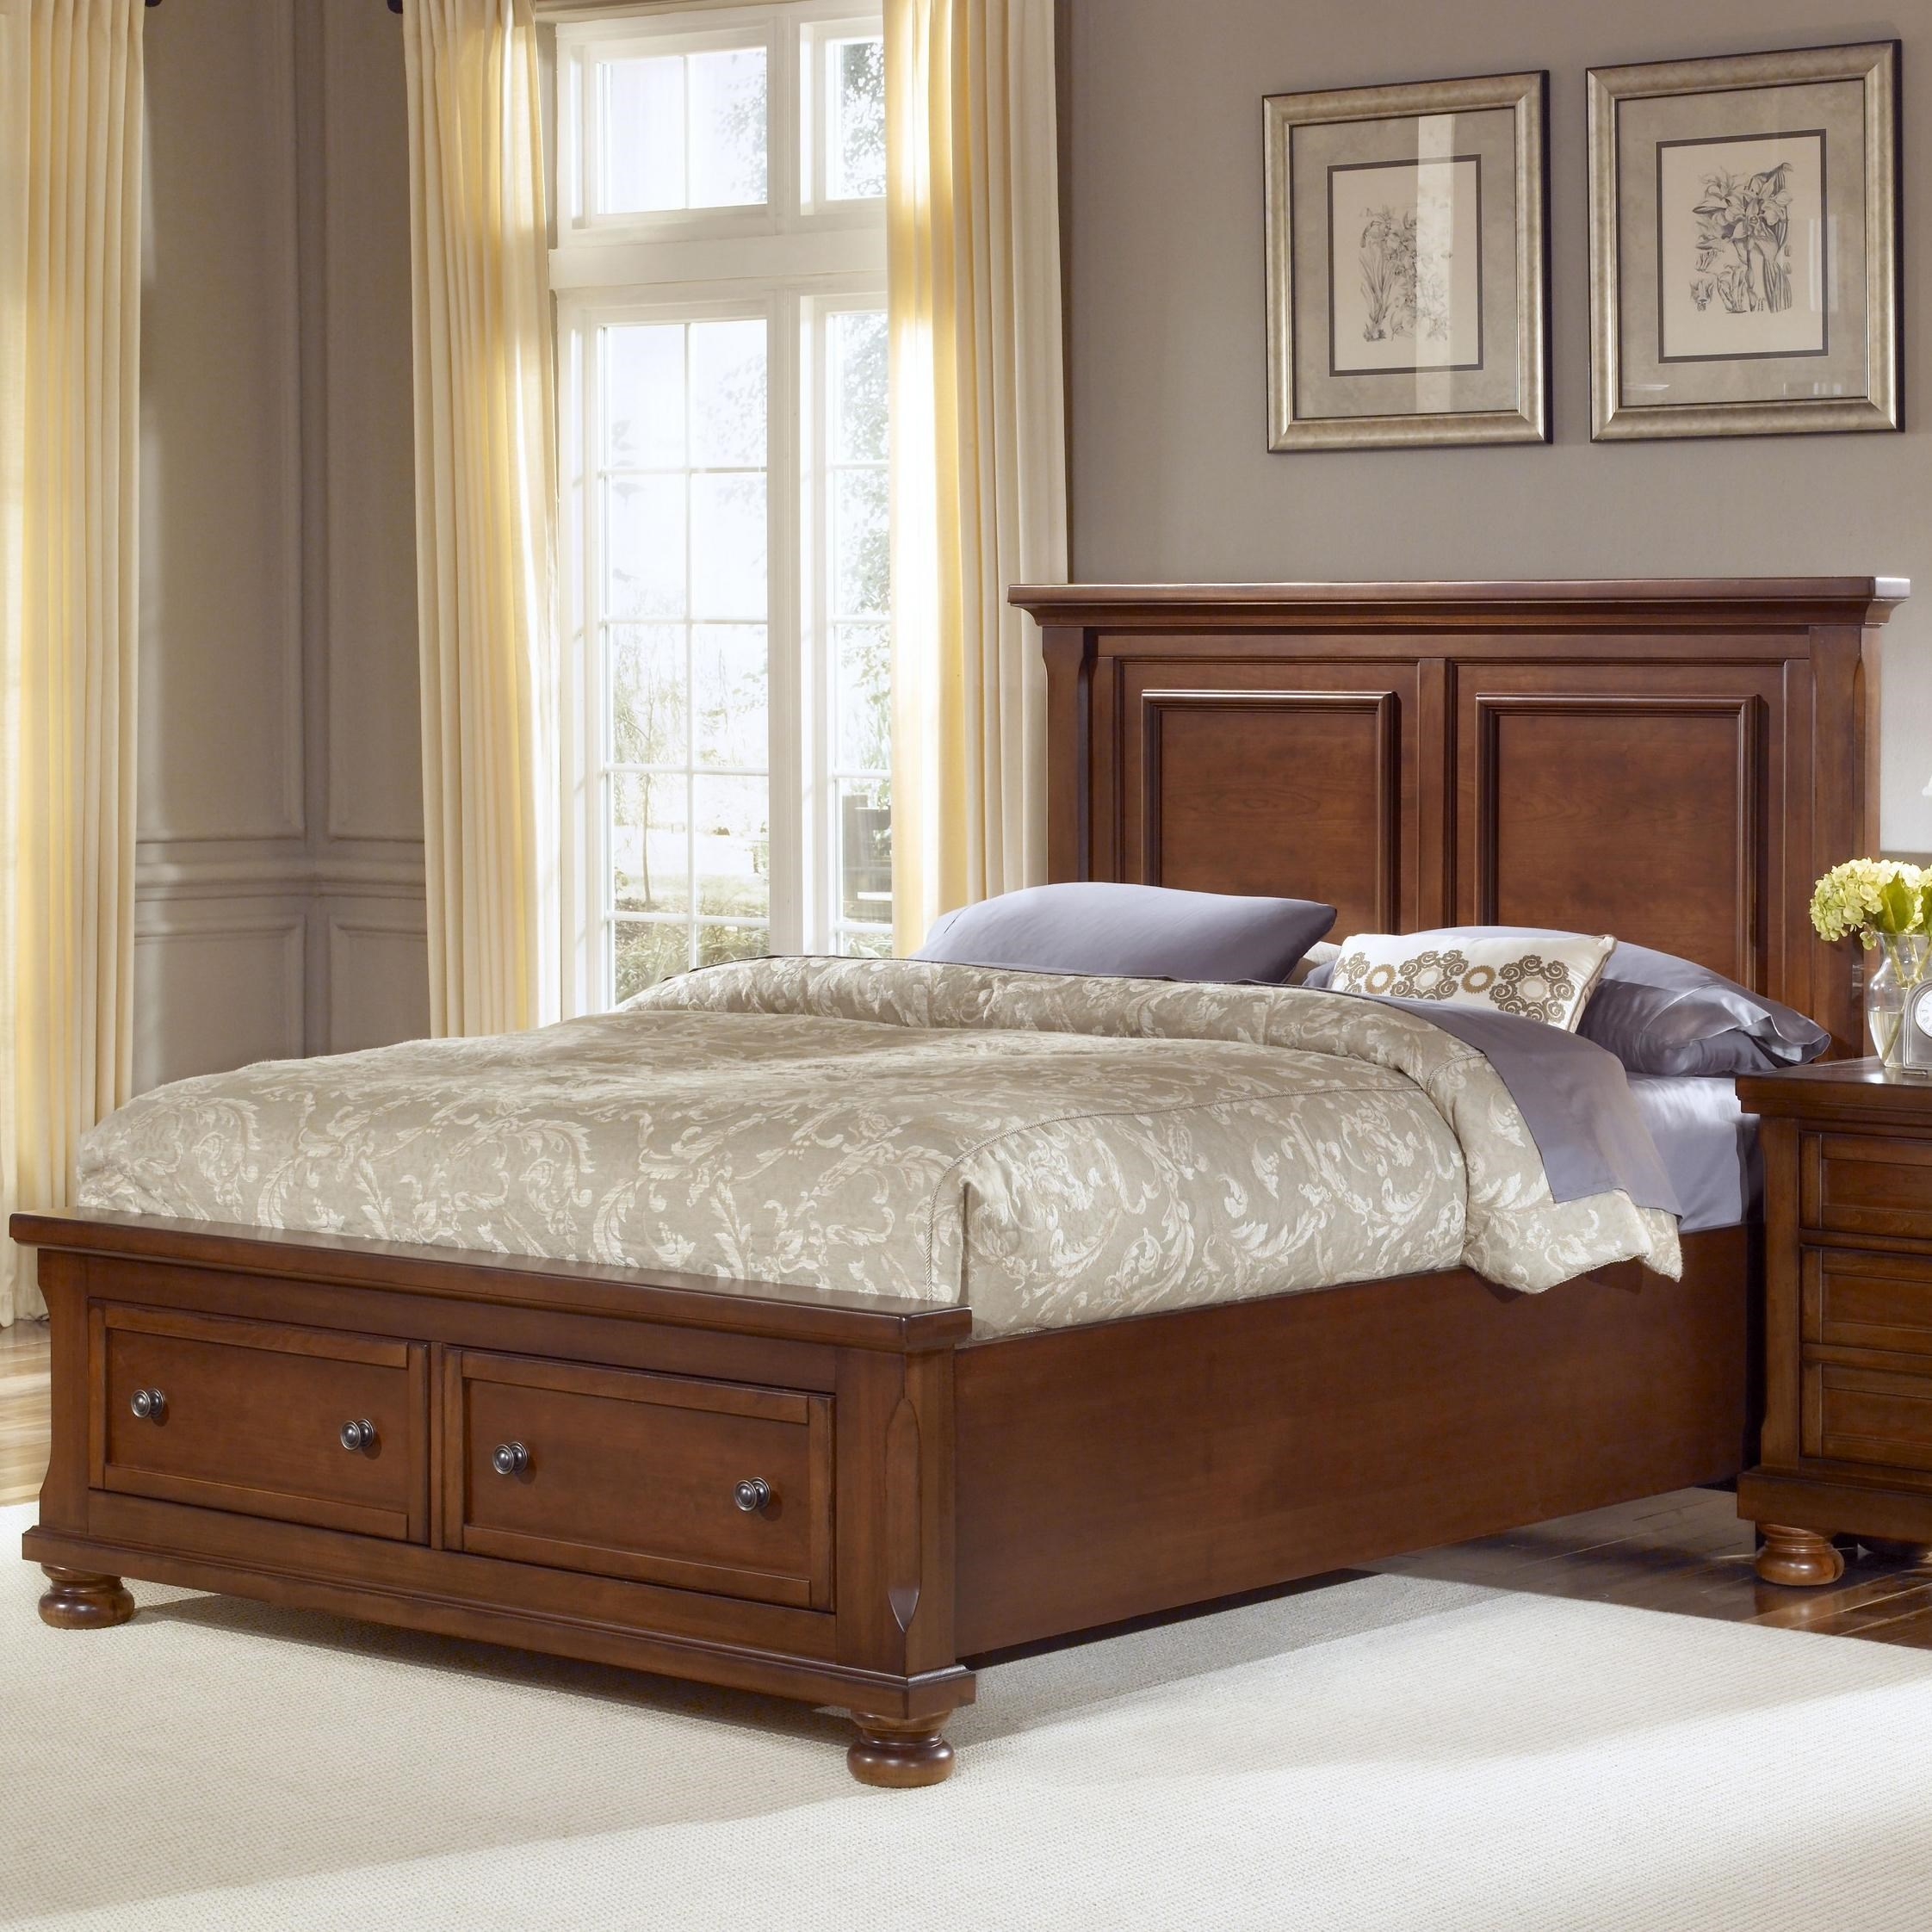 Charmant Vaughan Bassett ReflectionsQueen Storage Bed With Mansion Headboard